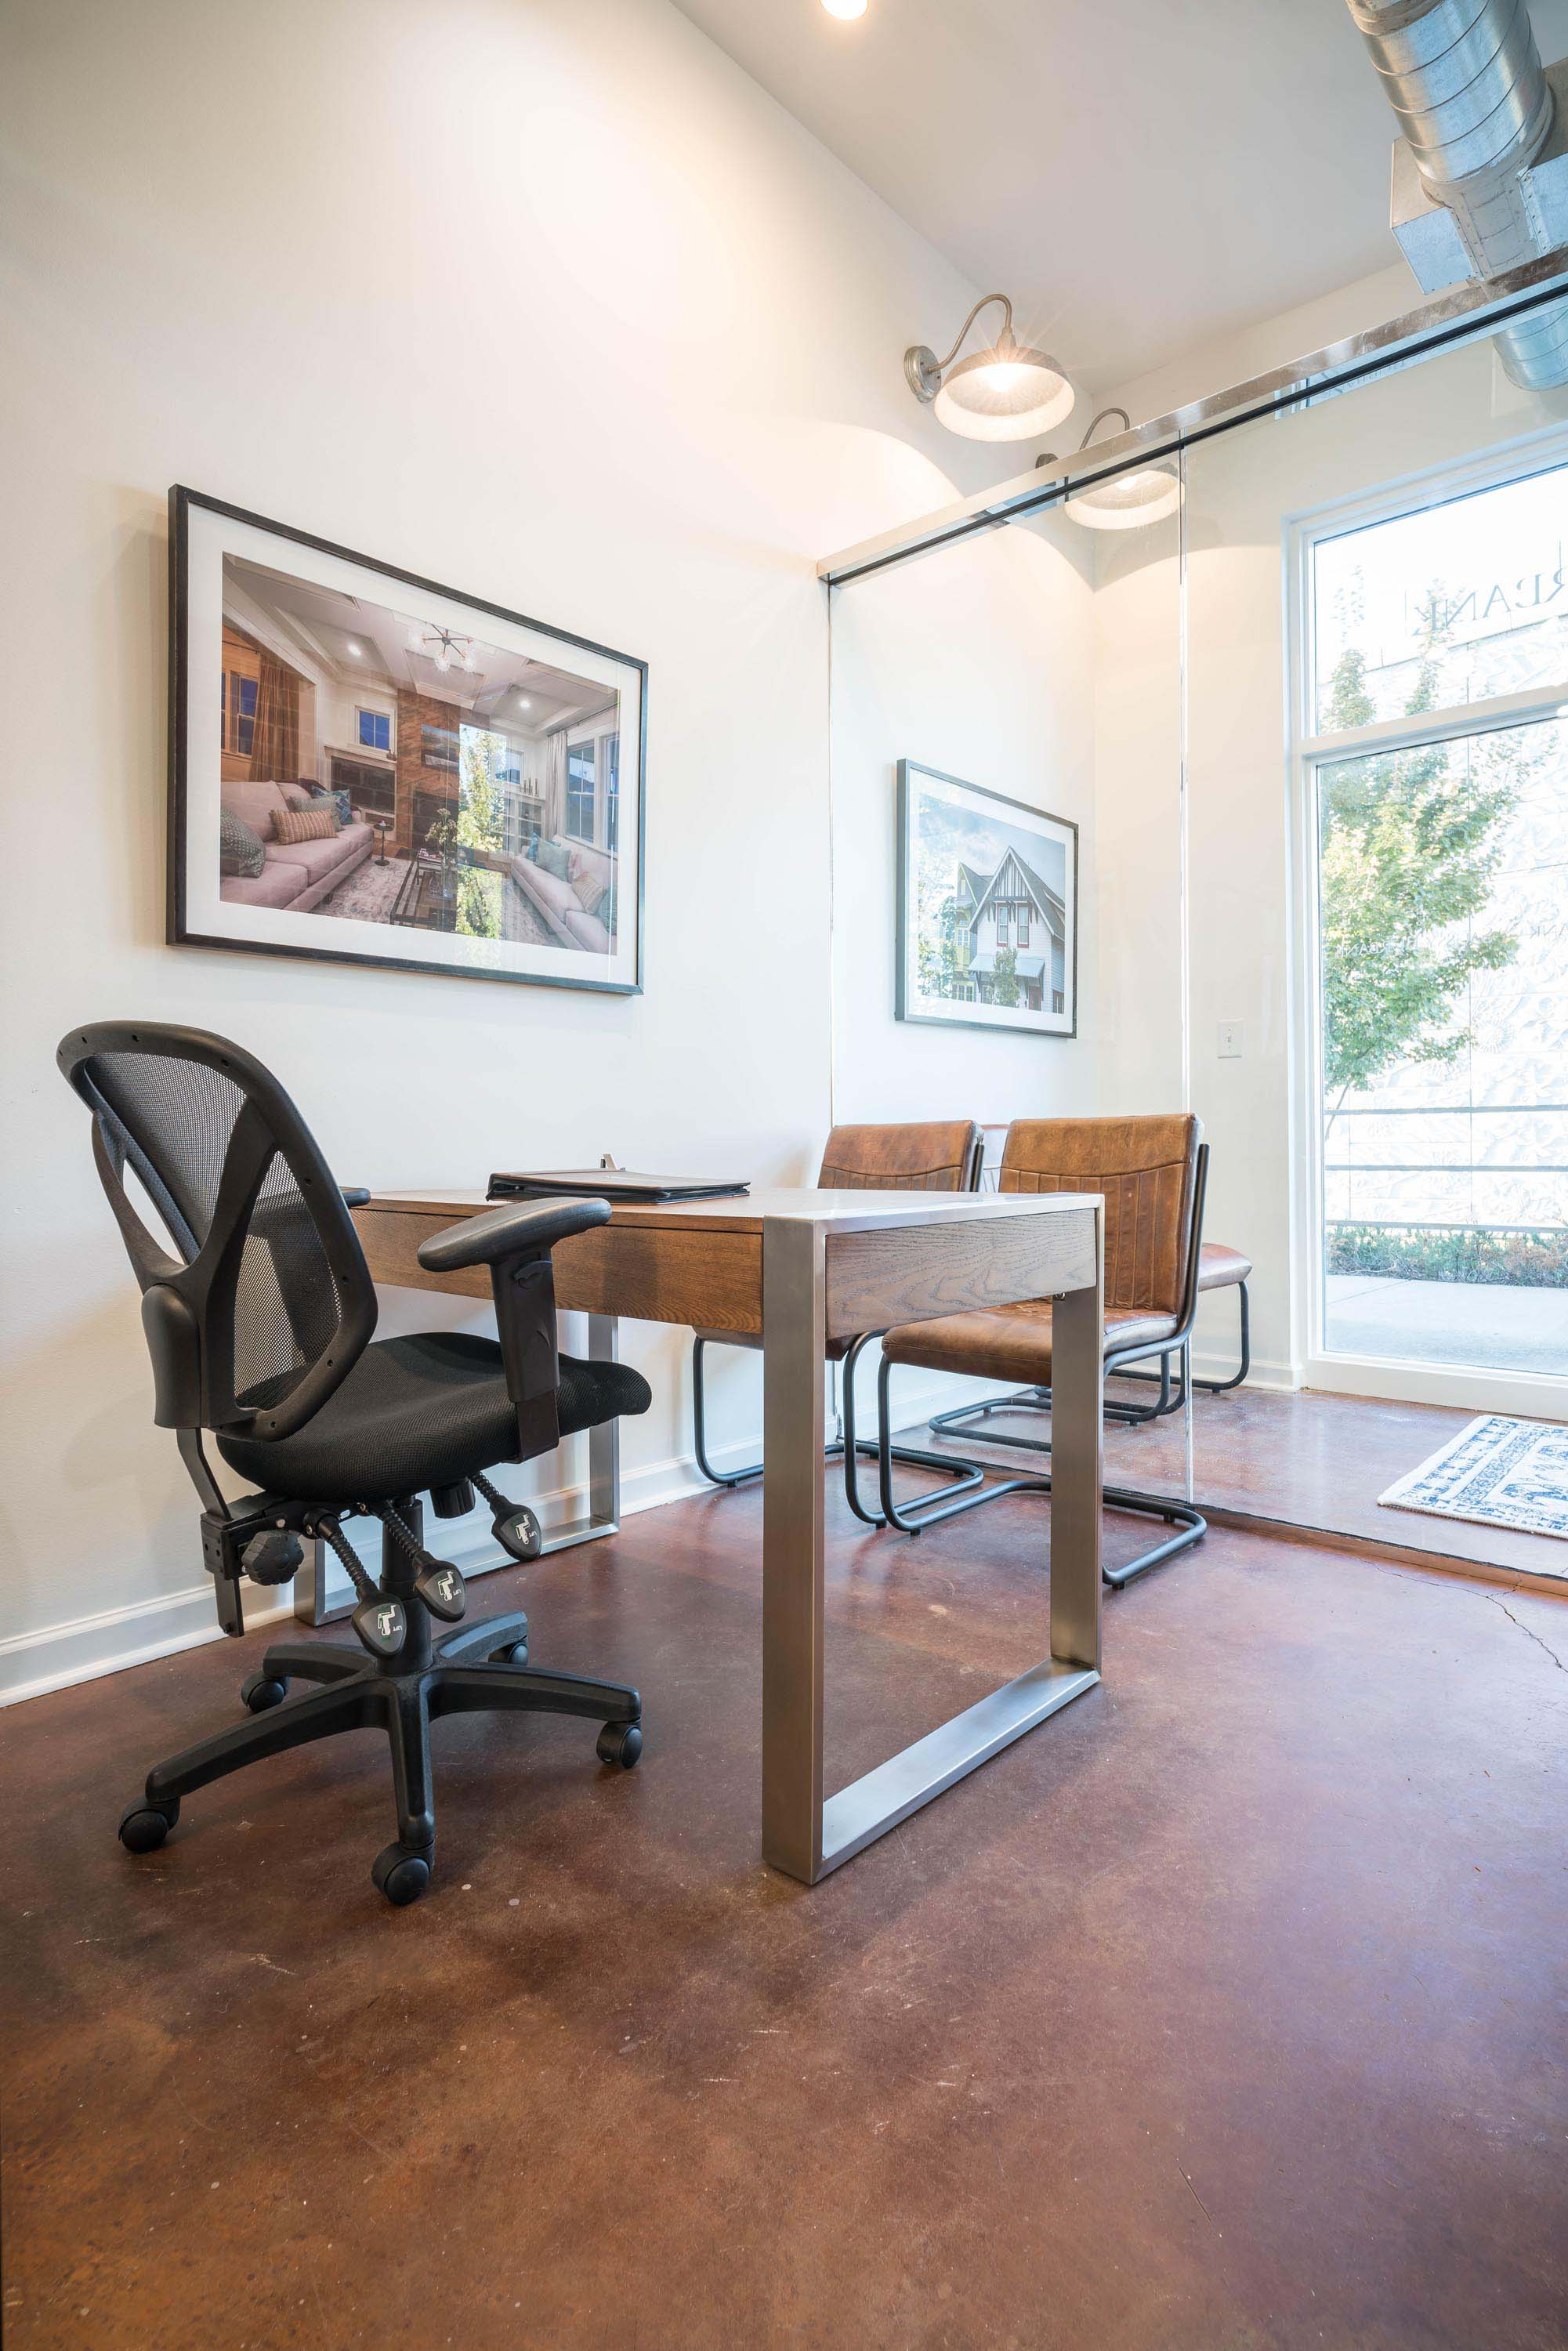 1. Office space with swivel chair and table